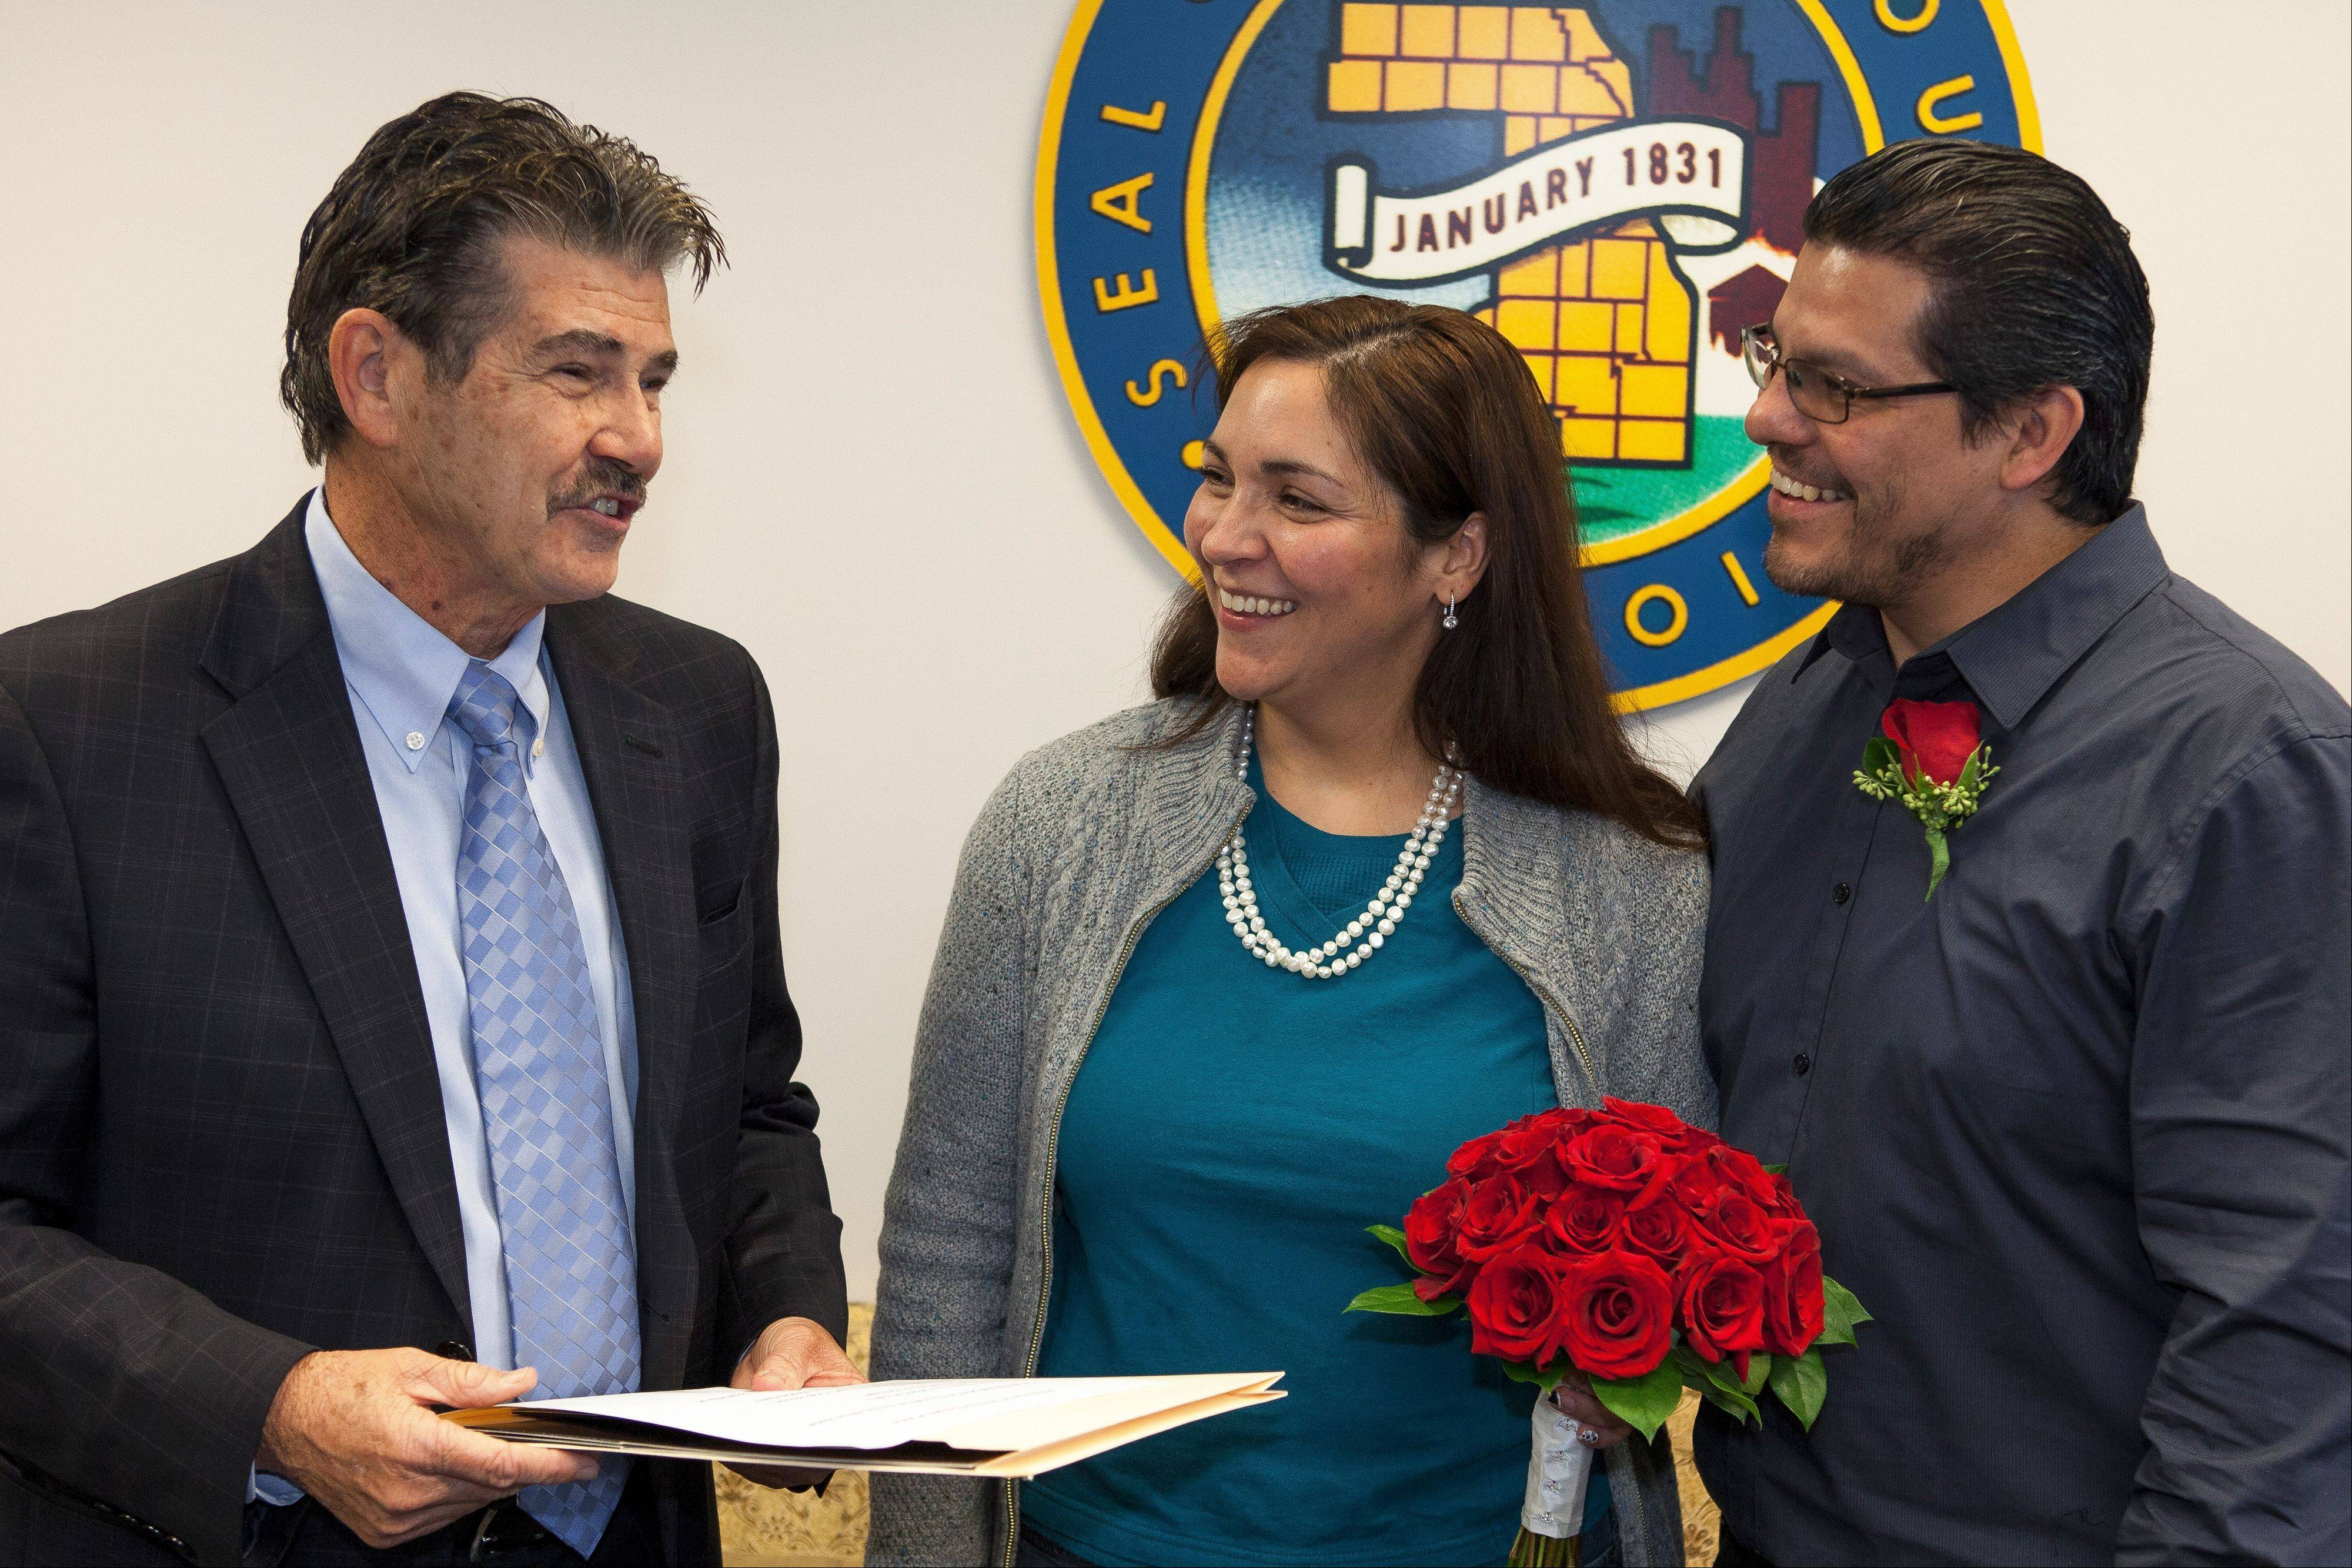 Courtesy of Cook County Clerk's officeCook County Clerk David Orr marries Ricca Rivera and Fernando Chaidez of Chicago, the first couple wed in the county in 2014.